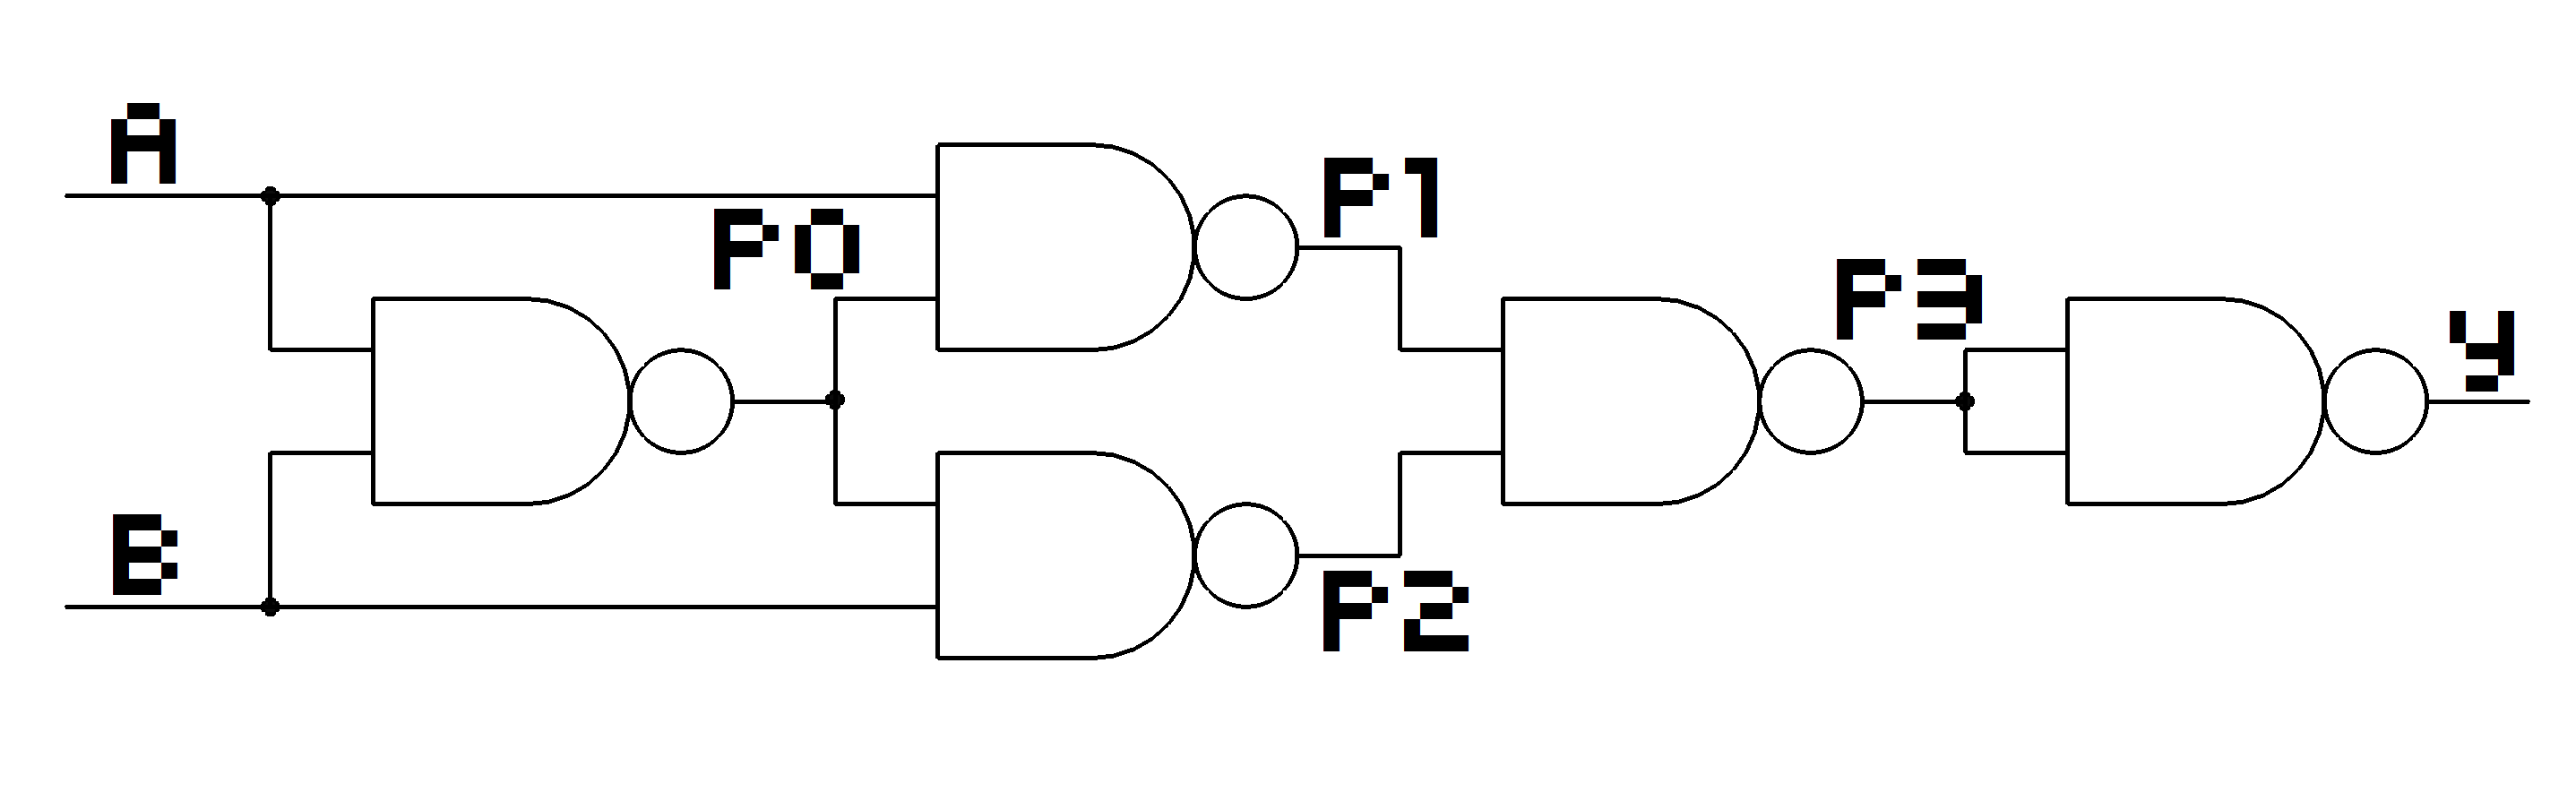 Logic Gates From Nand Theflyingkeyboard Diagram Of Gate Y P3 P1 P2 A P0 B